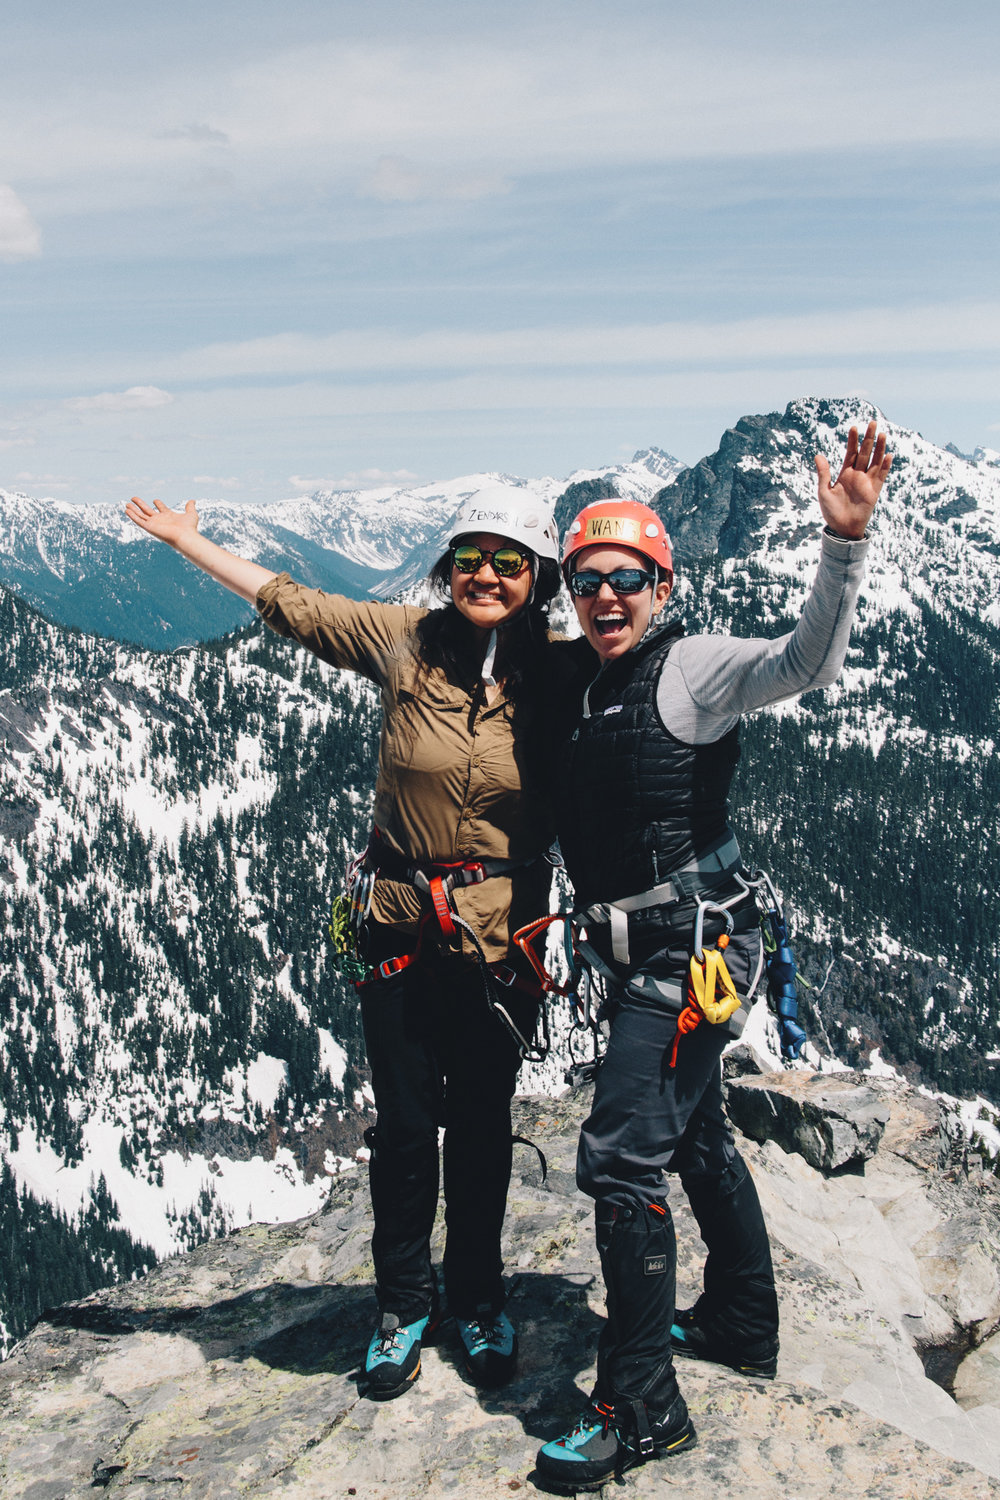 The next weekend was the Tooth with perfect weather! I finally did my first multi-pitch alpine climb. By far, the hardest thing I had ever done. Couldn't have done it without my fav climbing partner, Michelle!